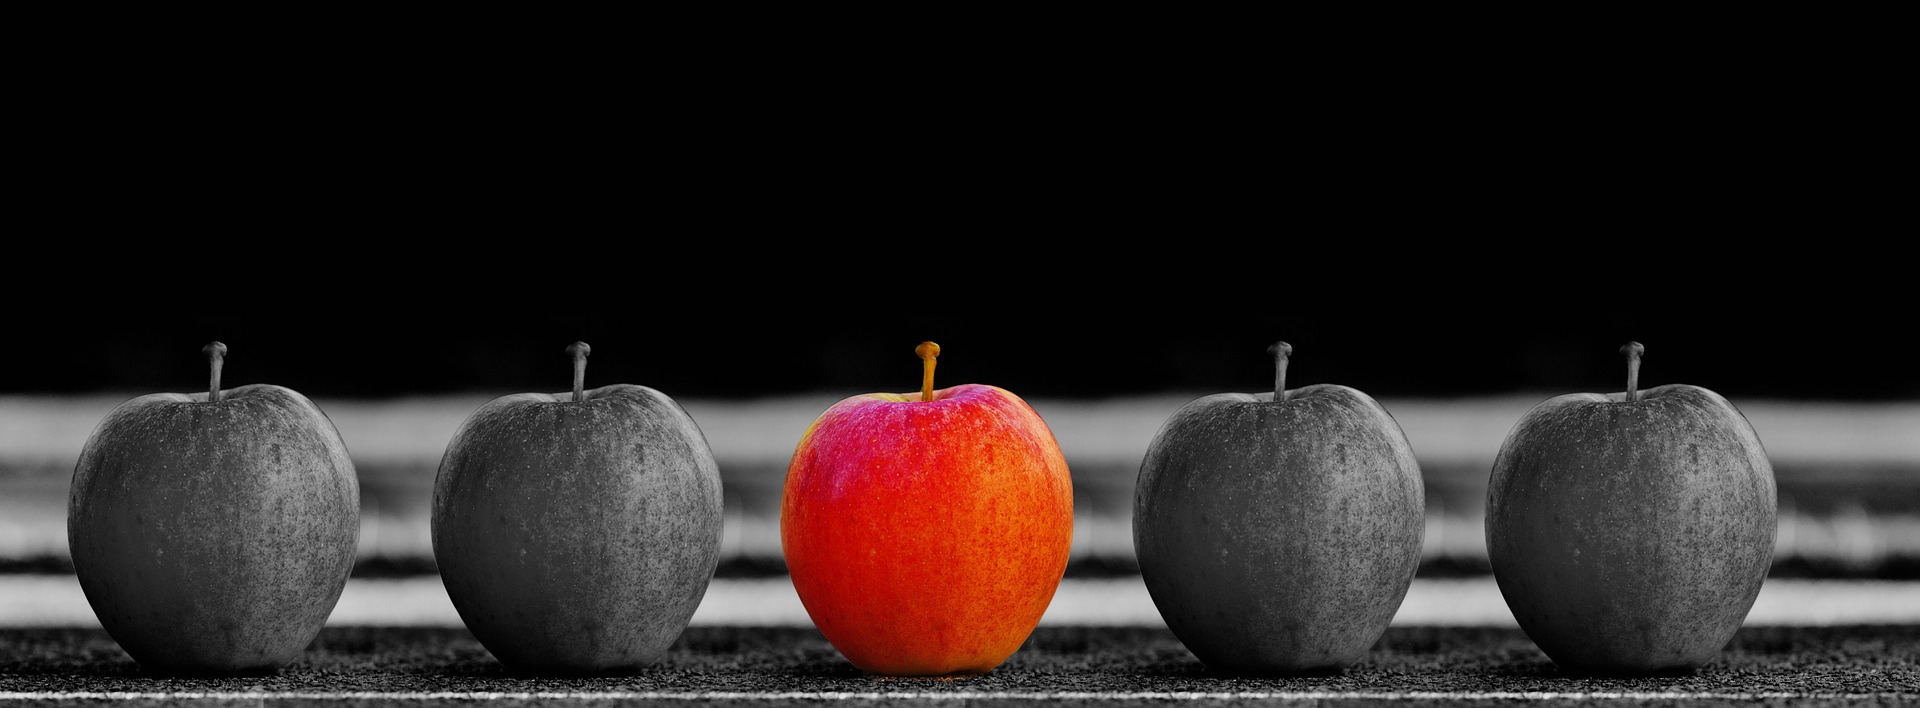 Comparing apples with apples to achieve consistent carbon footprint calculations